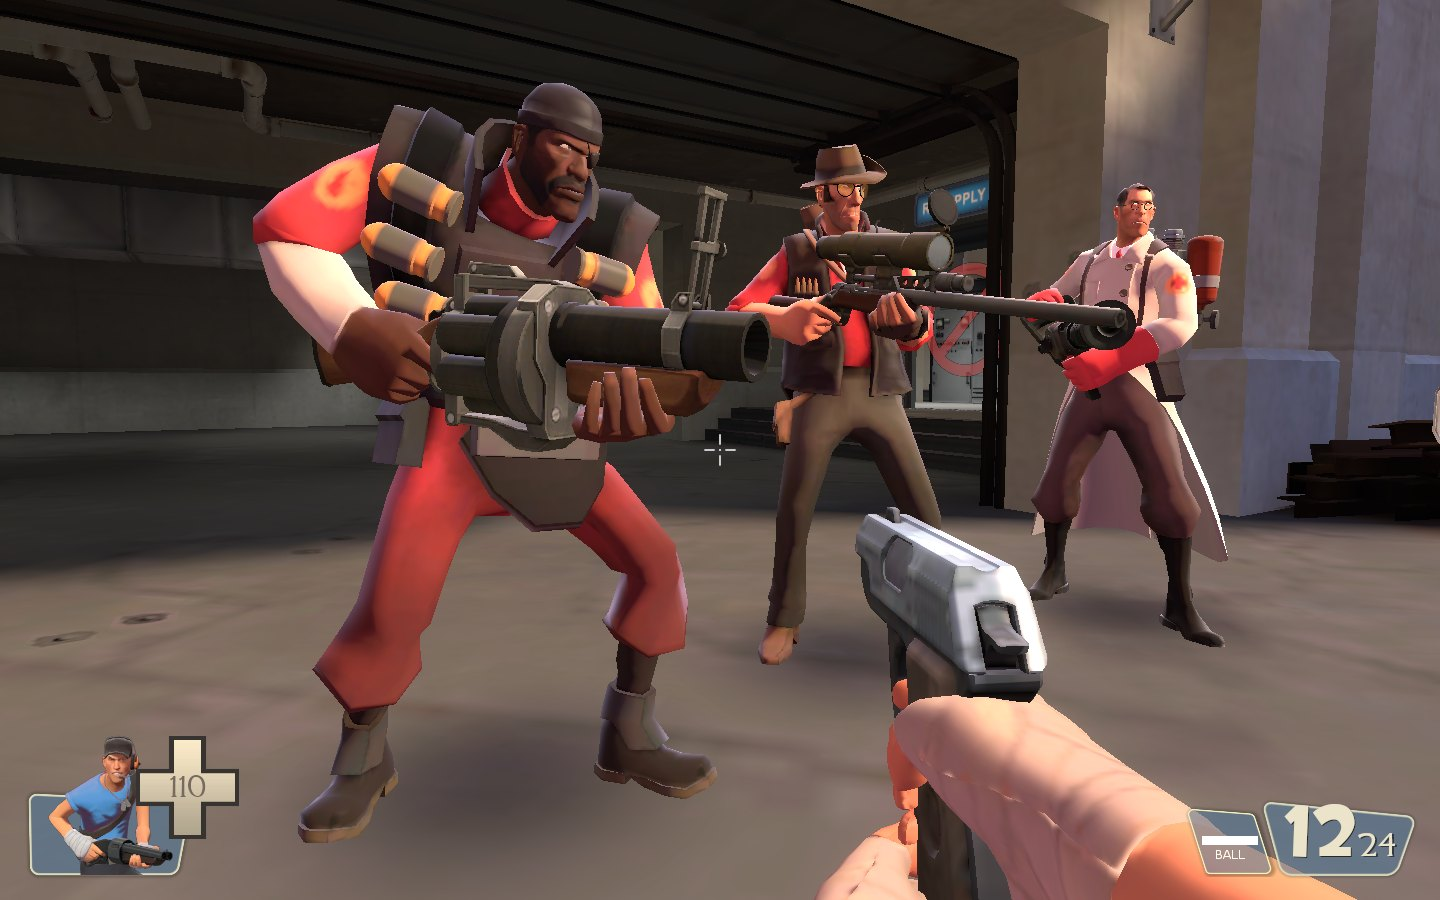 Let's whine about hats: TF2 is going too far | The Reticule